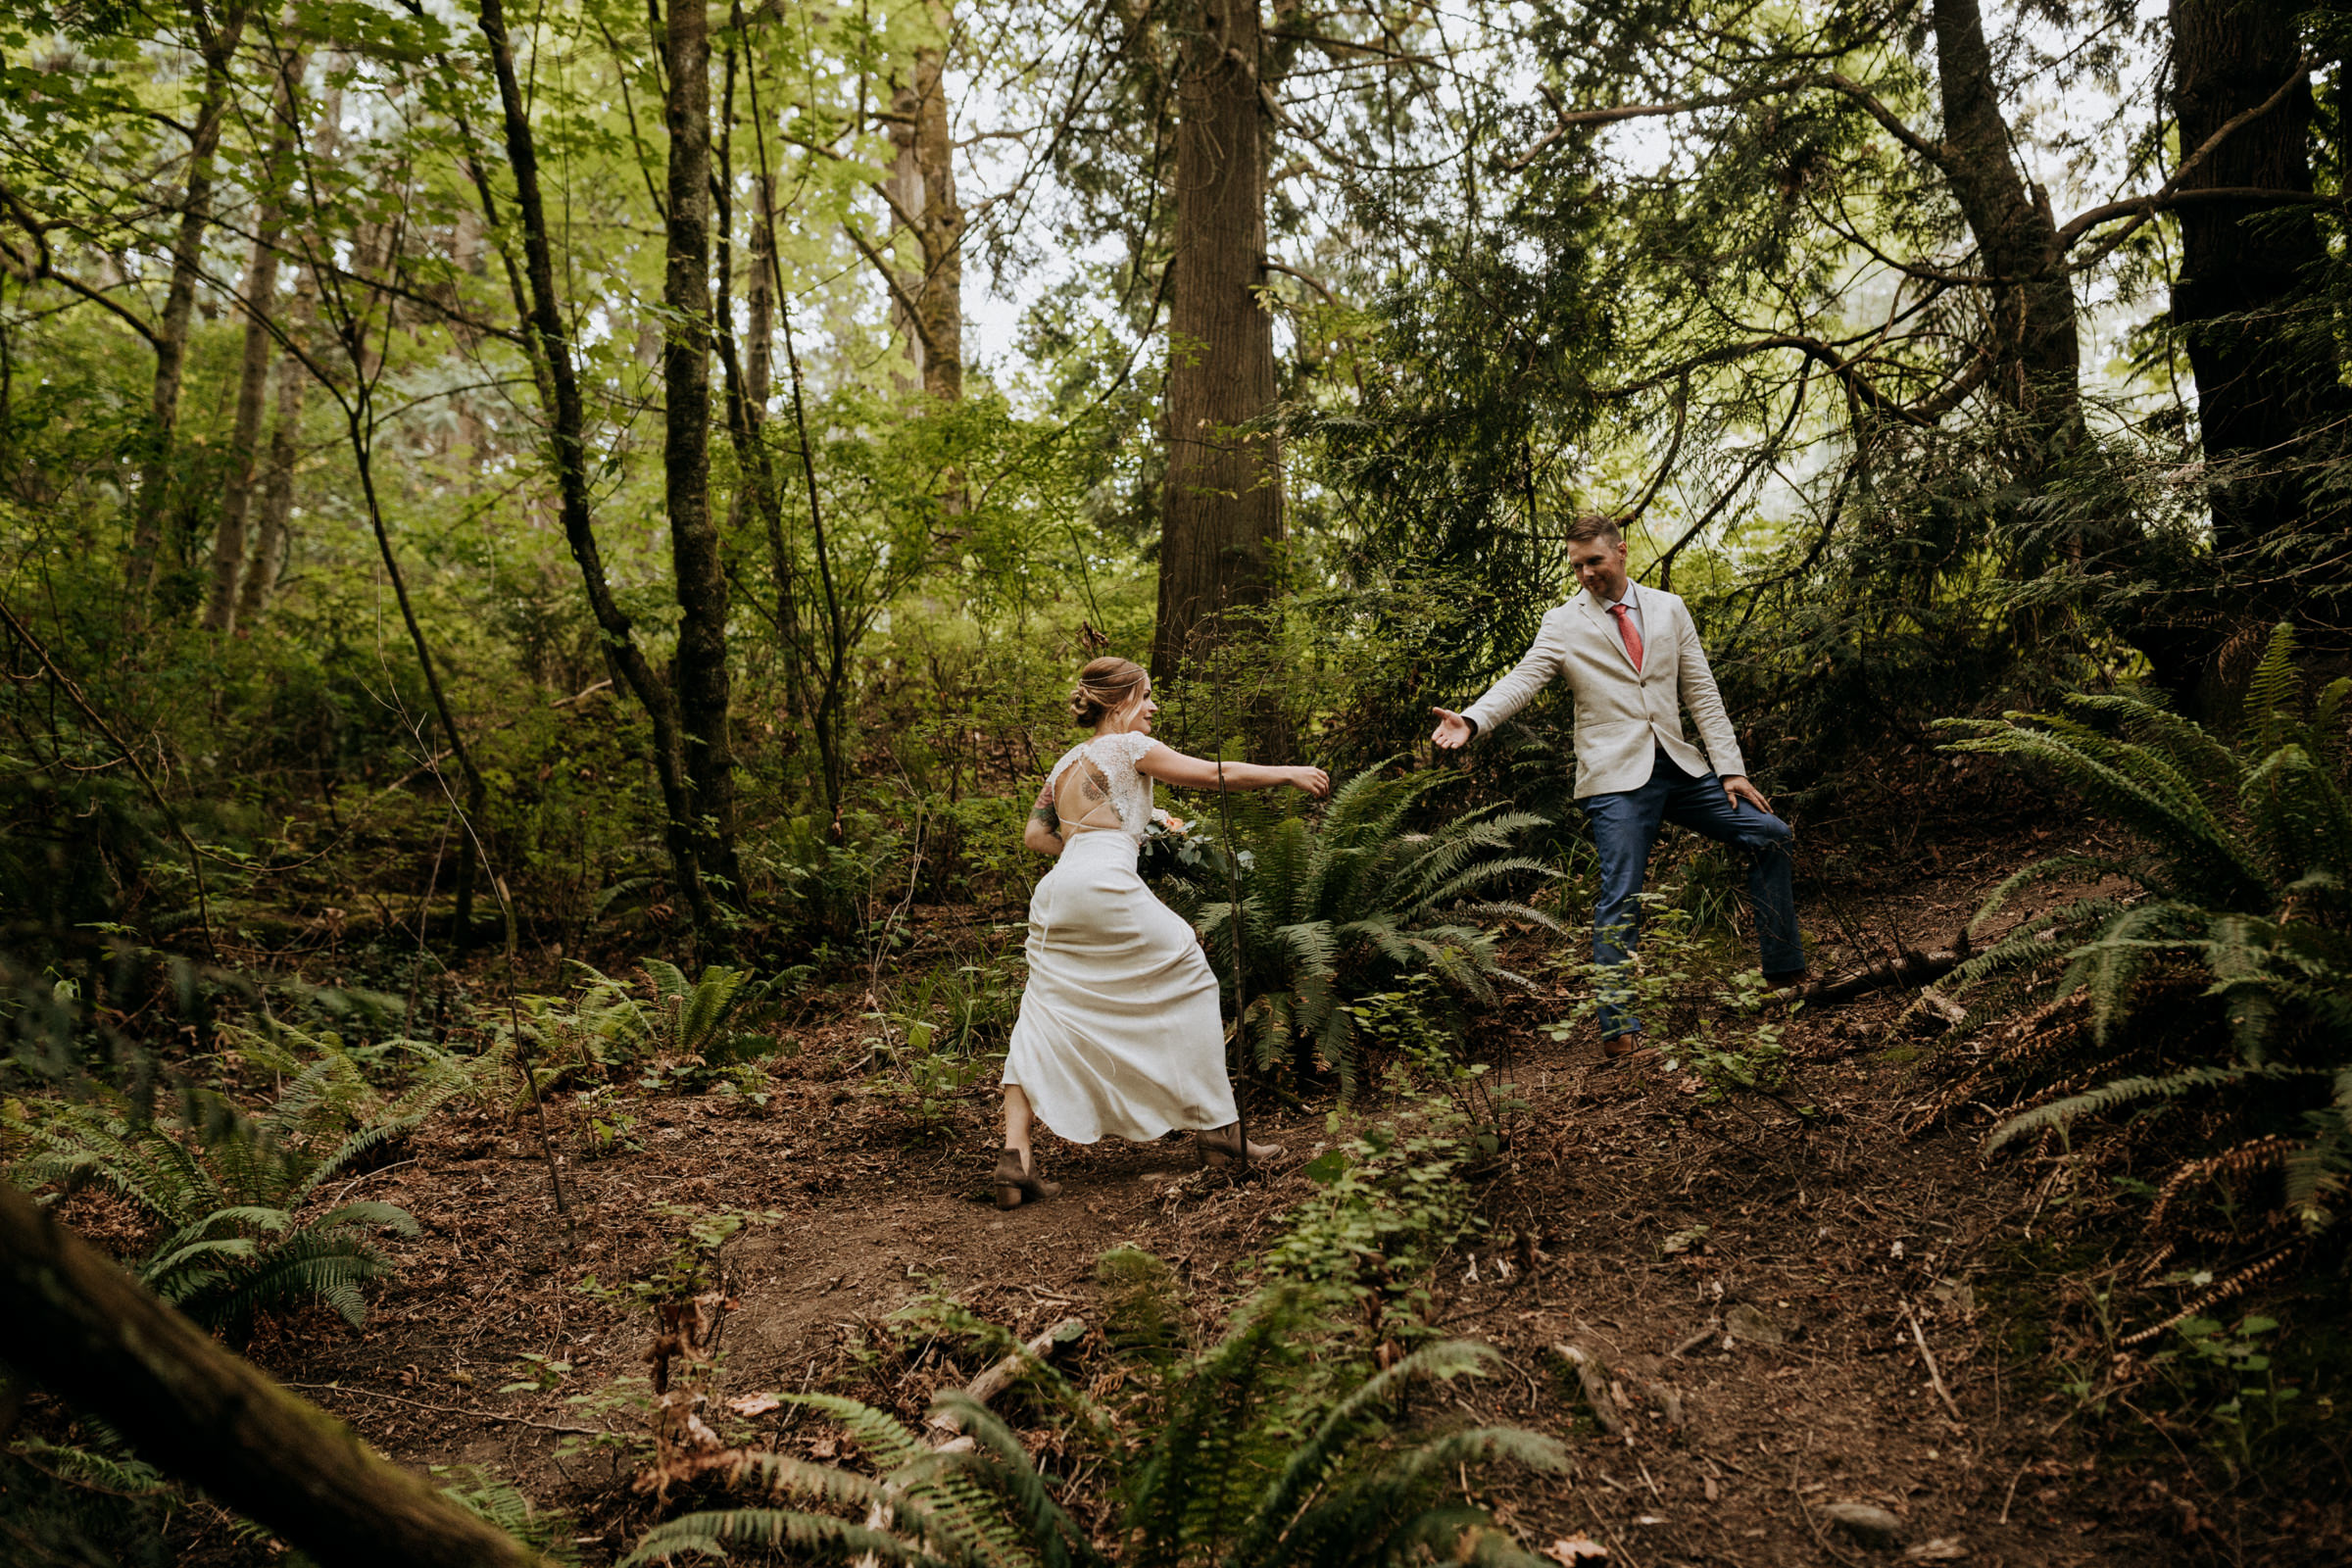 groom helps bride up forest hill Vancouver Island Elopement Photographer